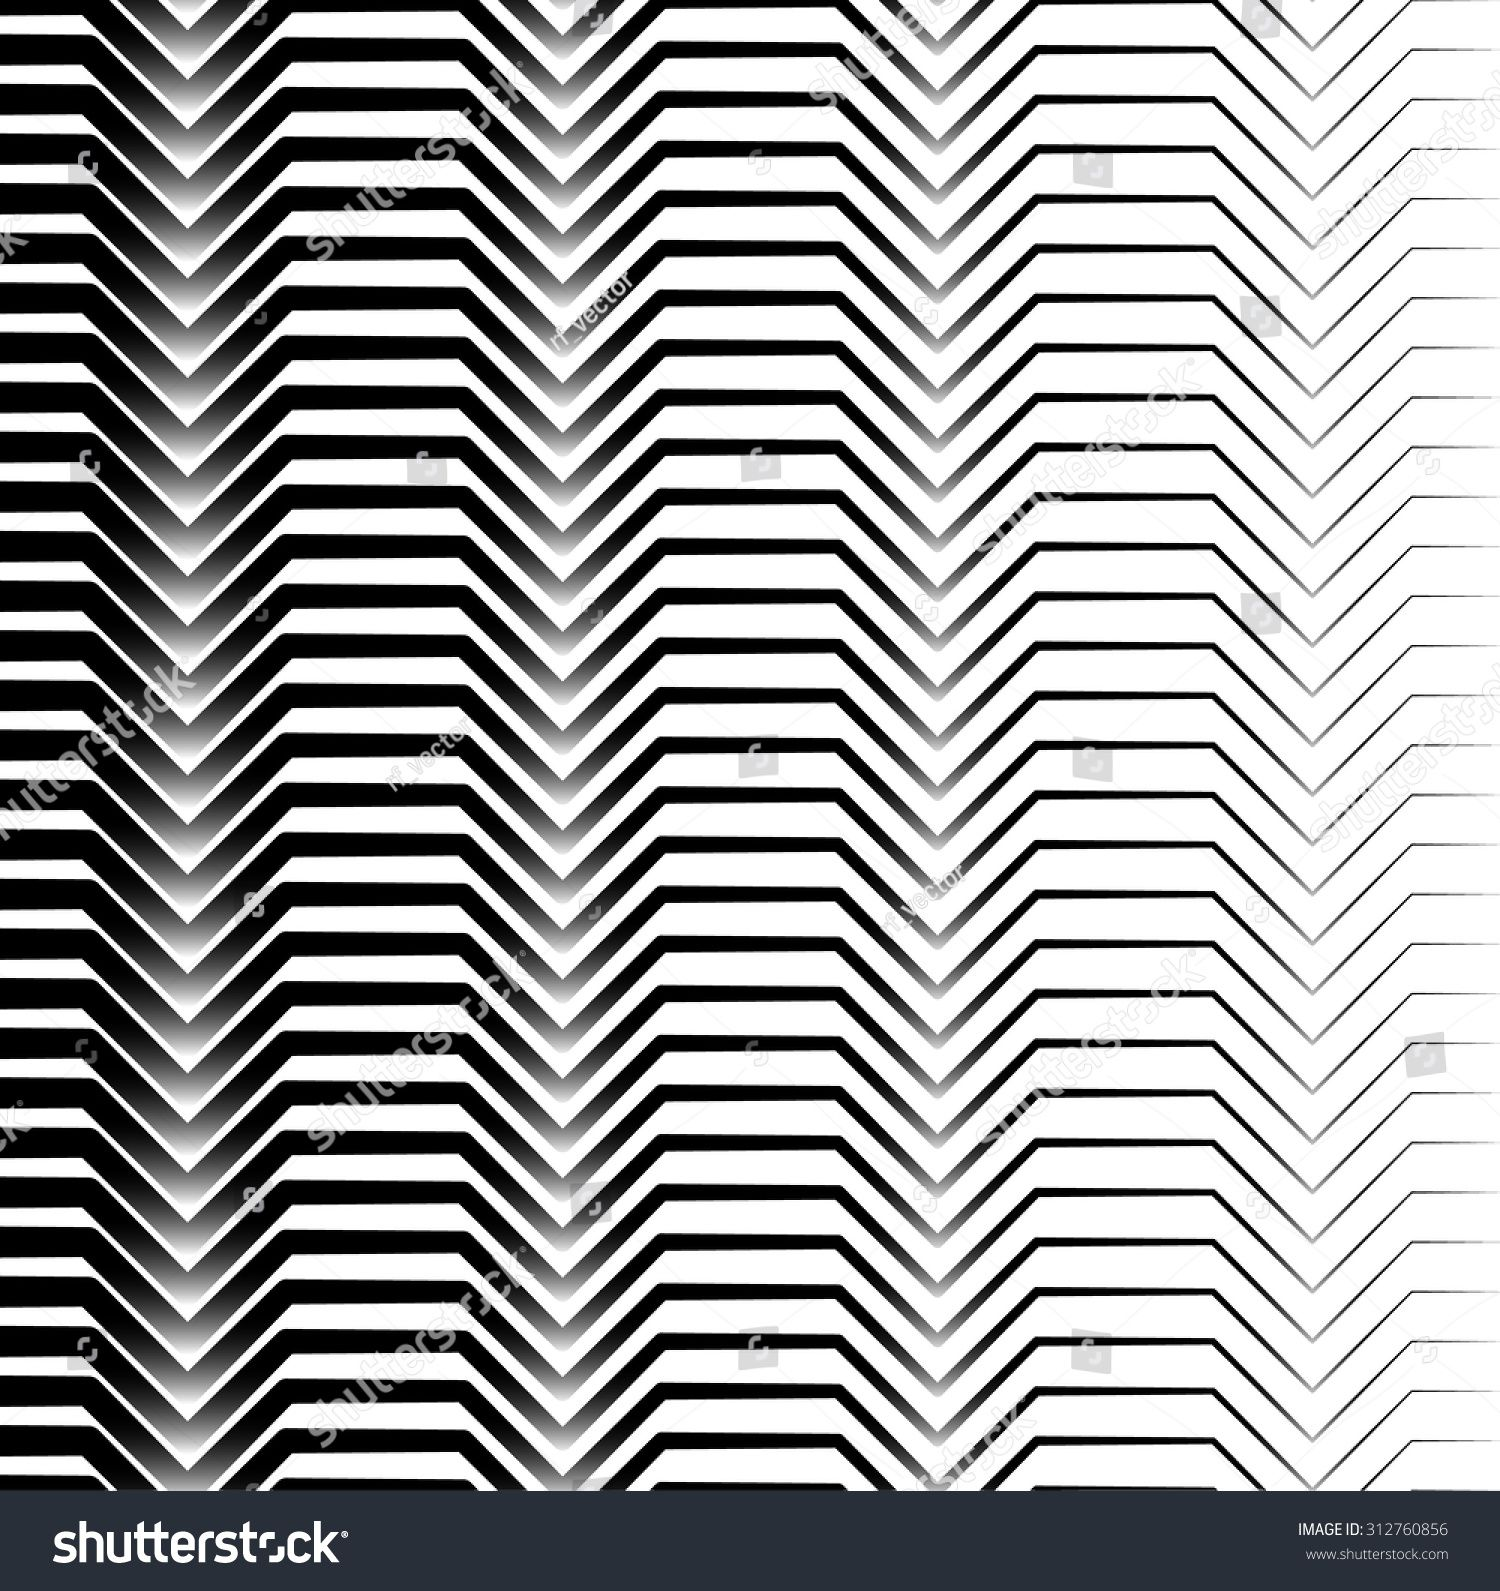 Black And White Horizontal Zigzag Lines Abstract Pattern